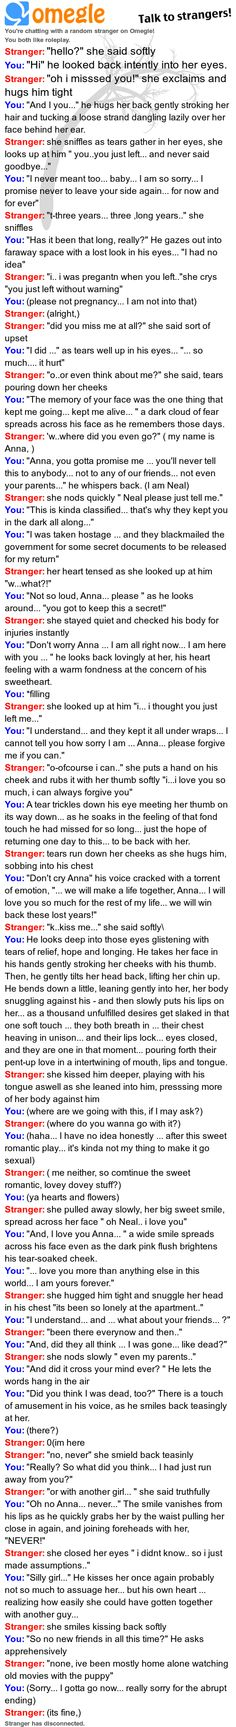 Romantic roleplay on Omegle.